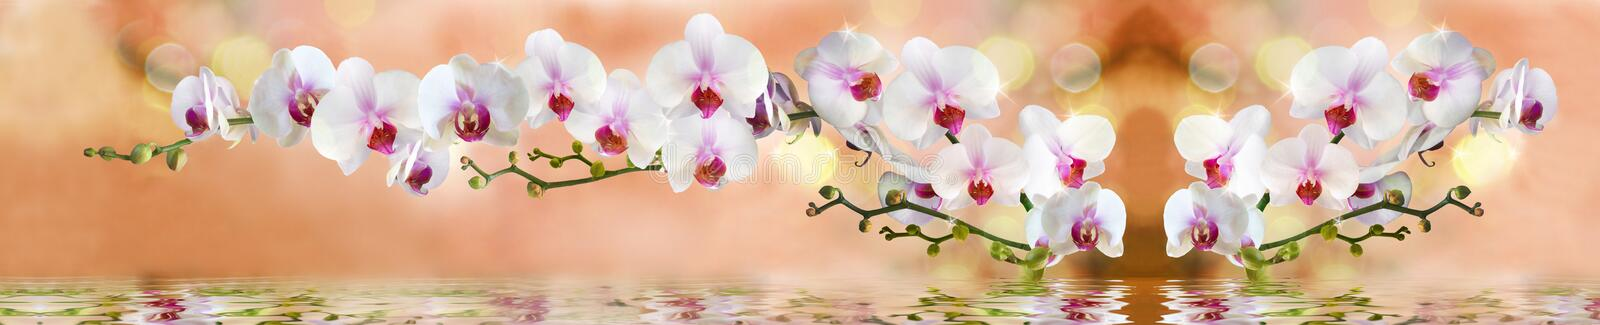 Orchid in the water on a light beige background royalty free stock image